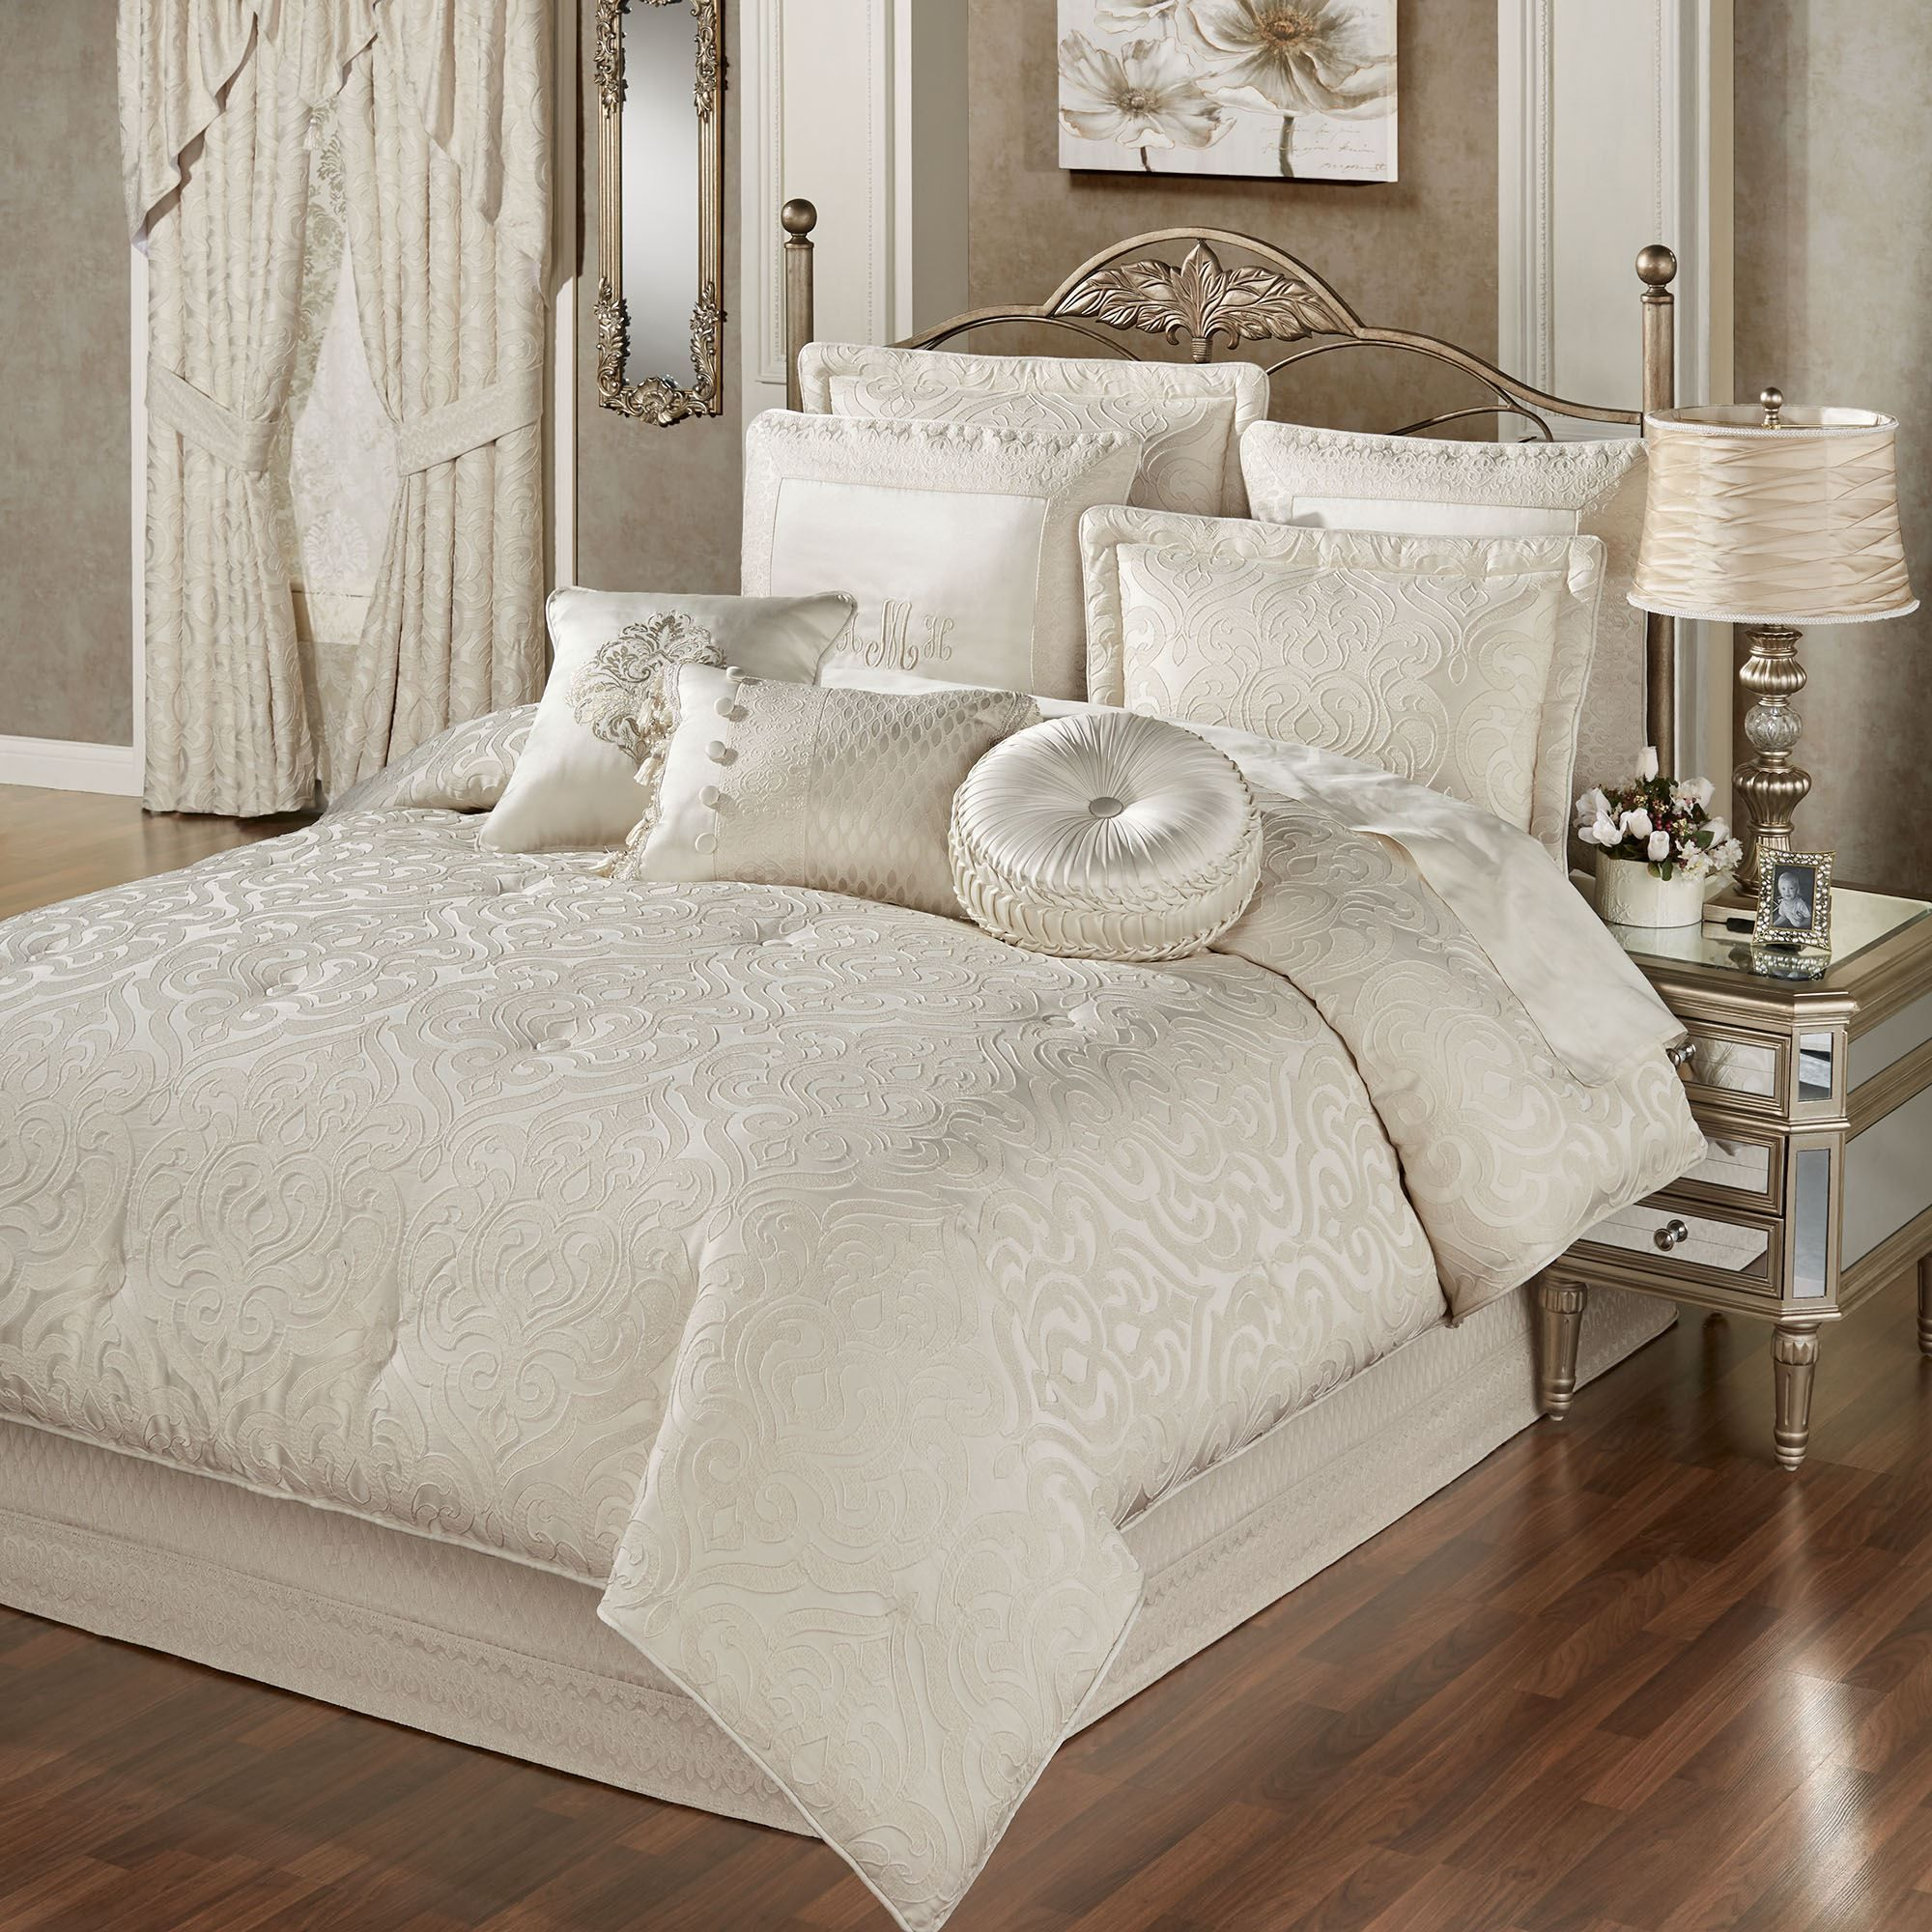 Seraphina Ivory Damask Comforter Bedding Luxury Bedding Beautiful Bedding Sets Bed Linens Luxury